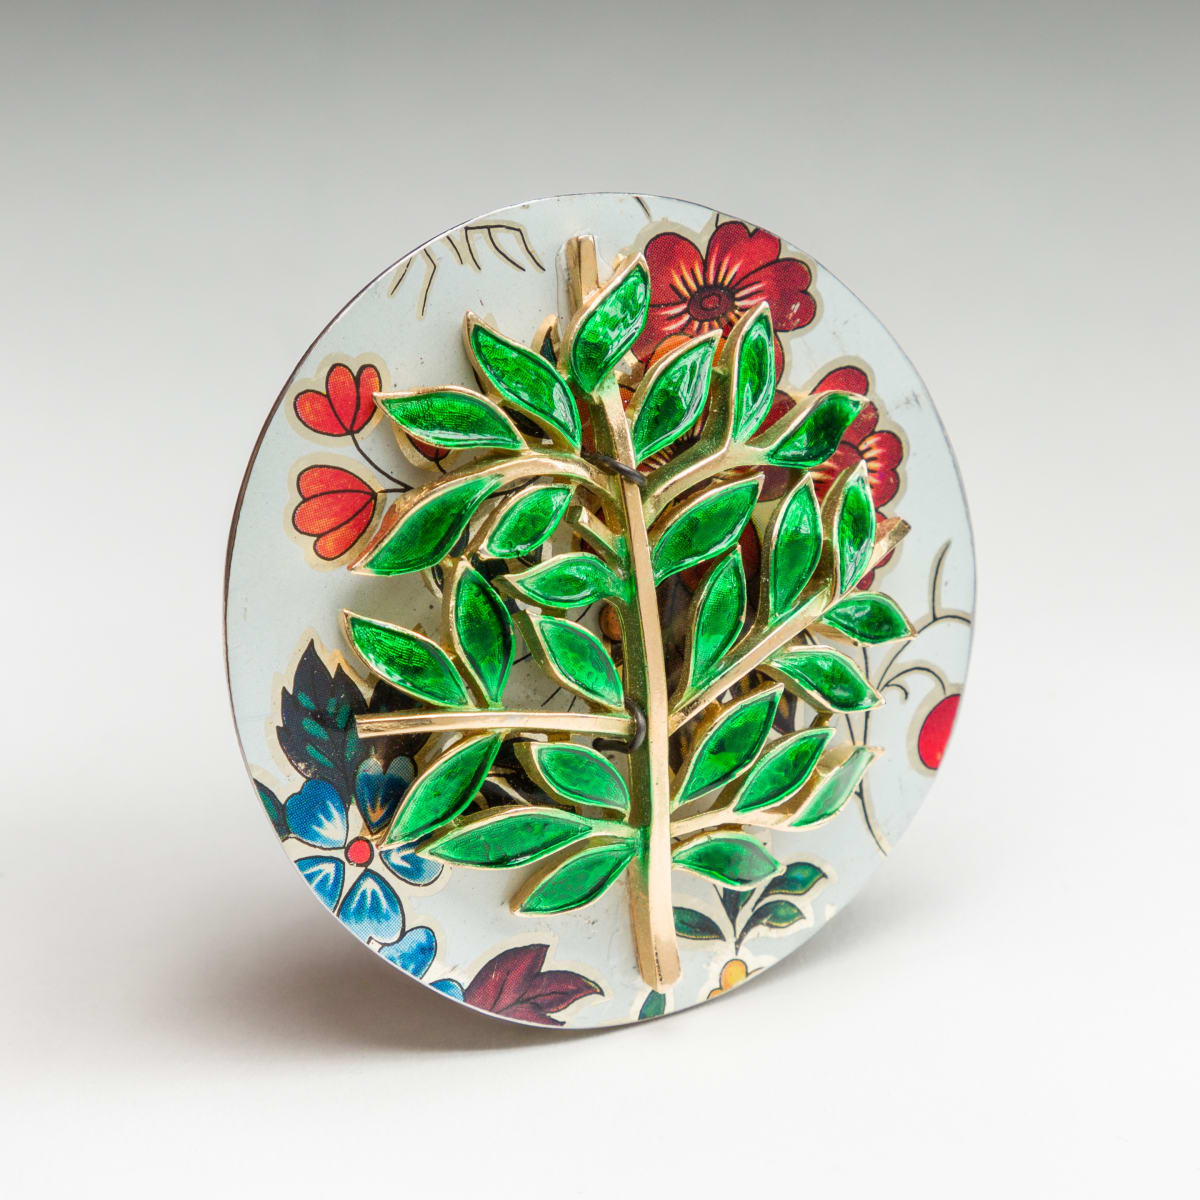 Mint Museum Acquires Over 100 Pieces By Robert Ebendorf